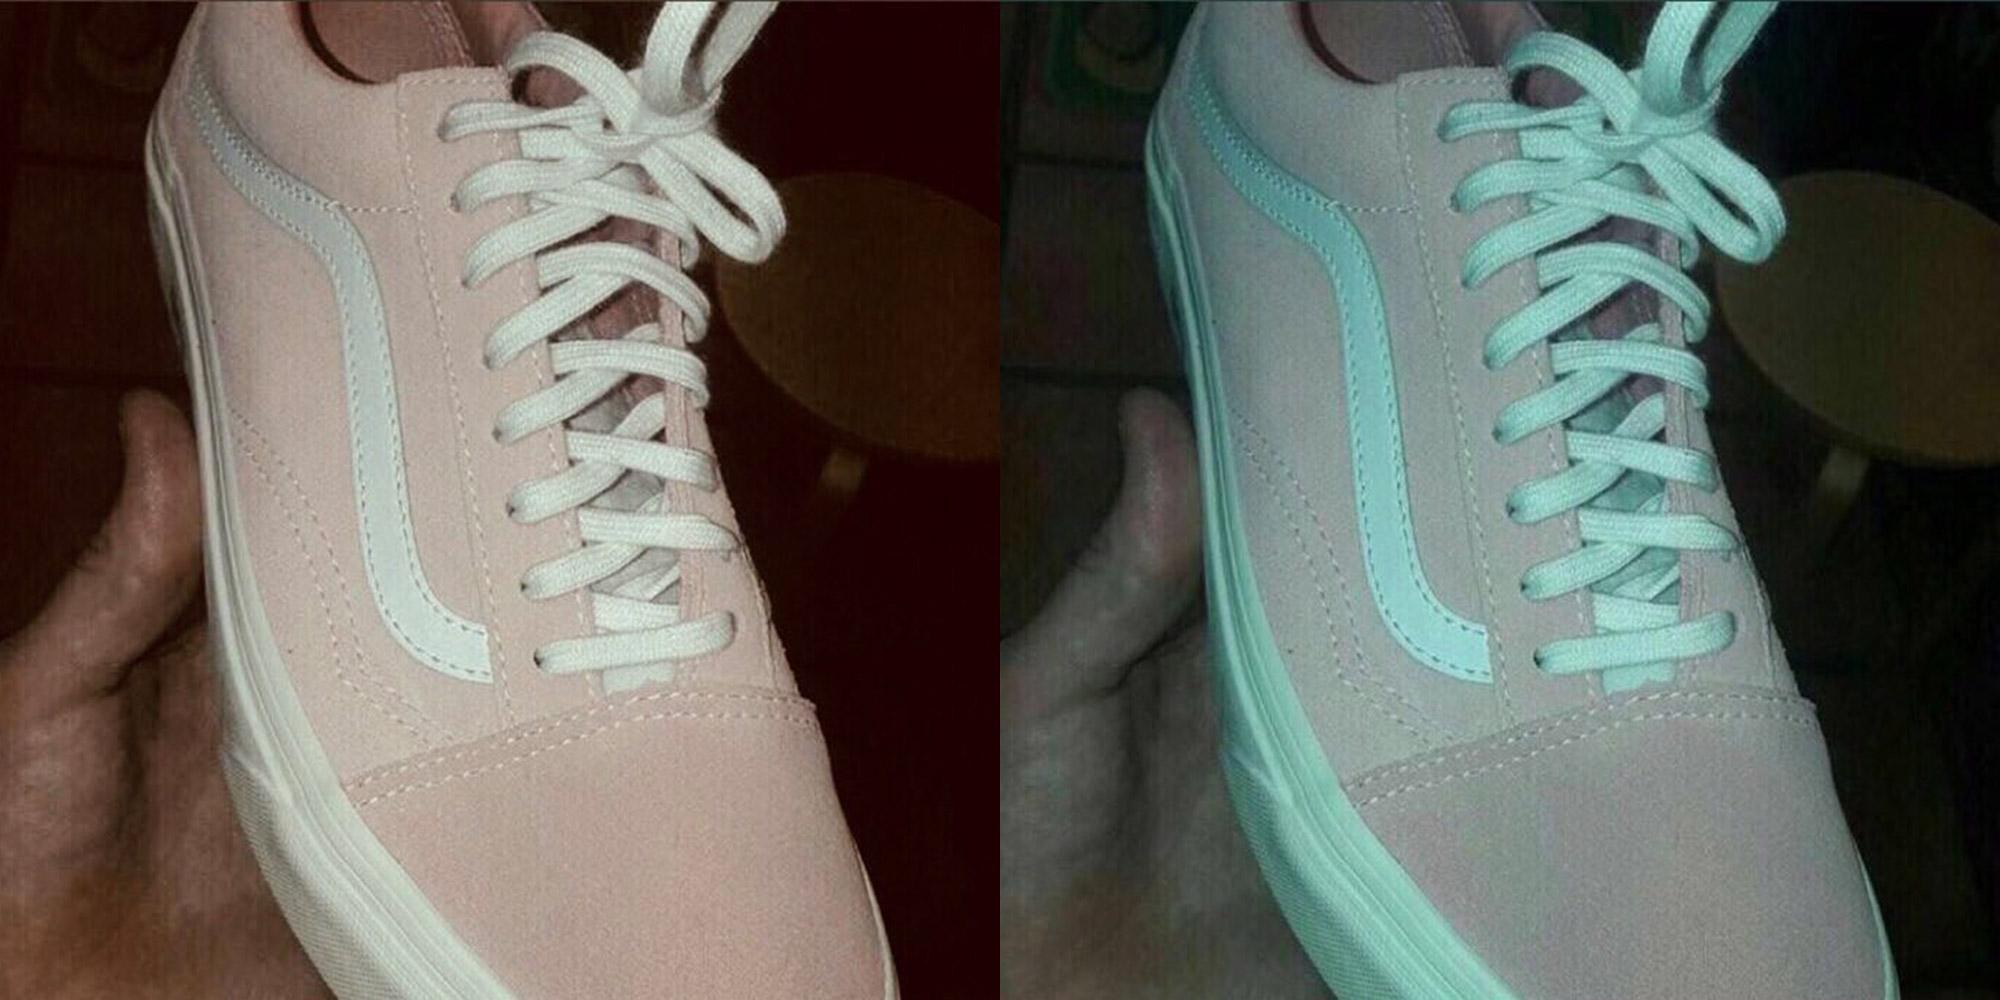 0386e0426cbbf4 Do you think these trainers are pink and white or blue and grey ...